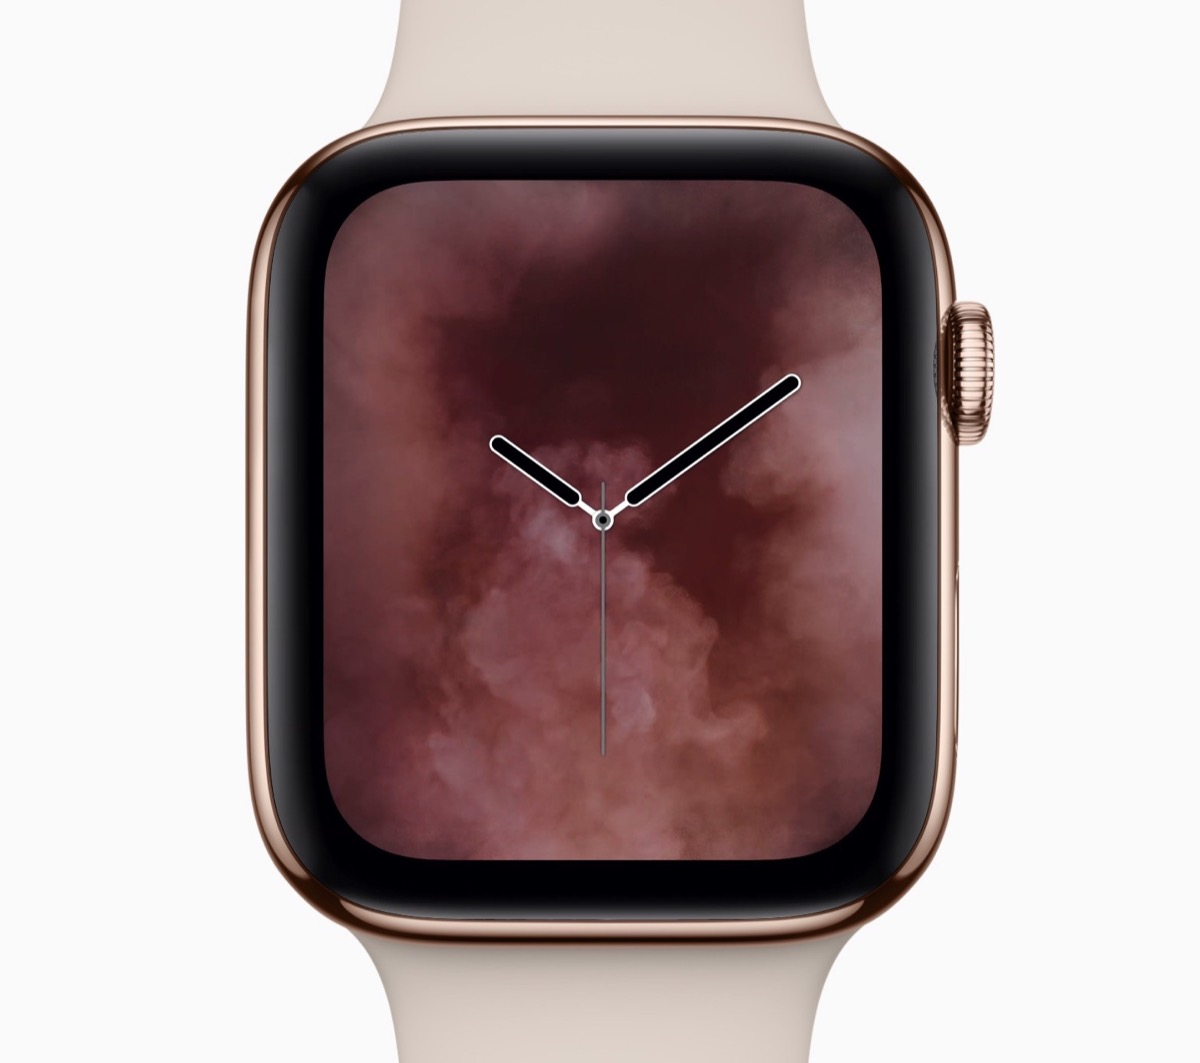 ... Live Apple Watch Wallpaper: Ecco I Nuovi Quadranti Per Apple Watch, Ma Su Series